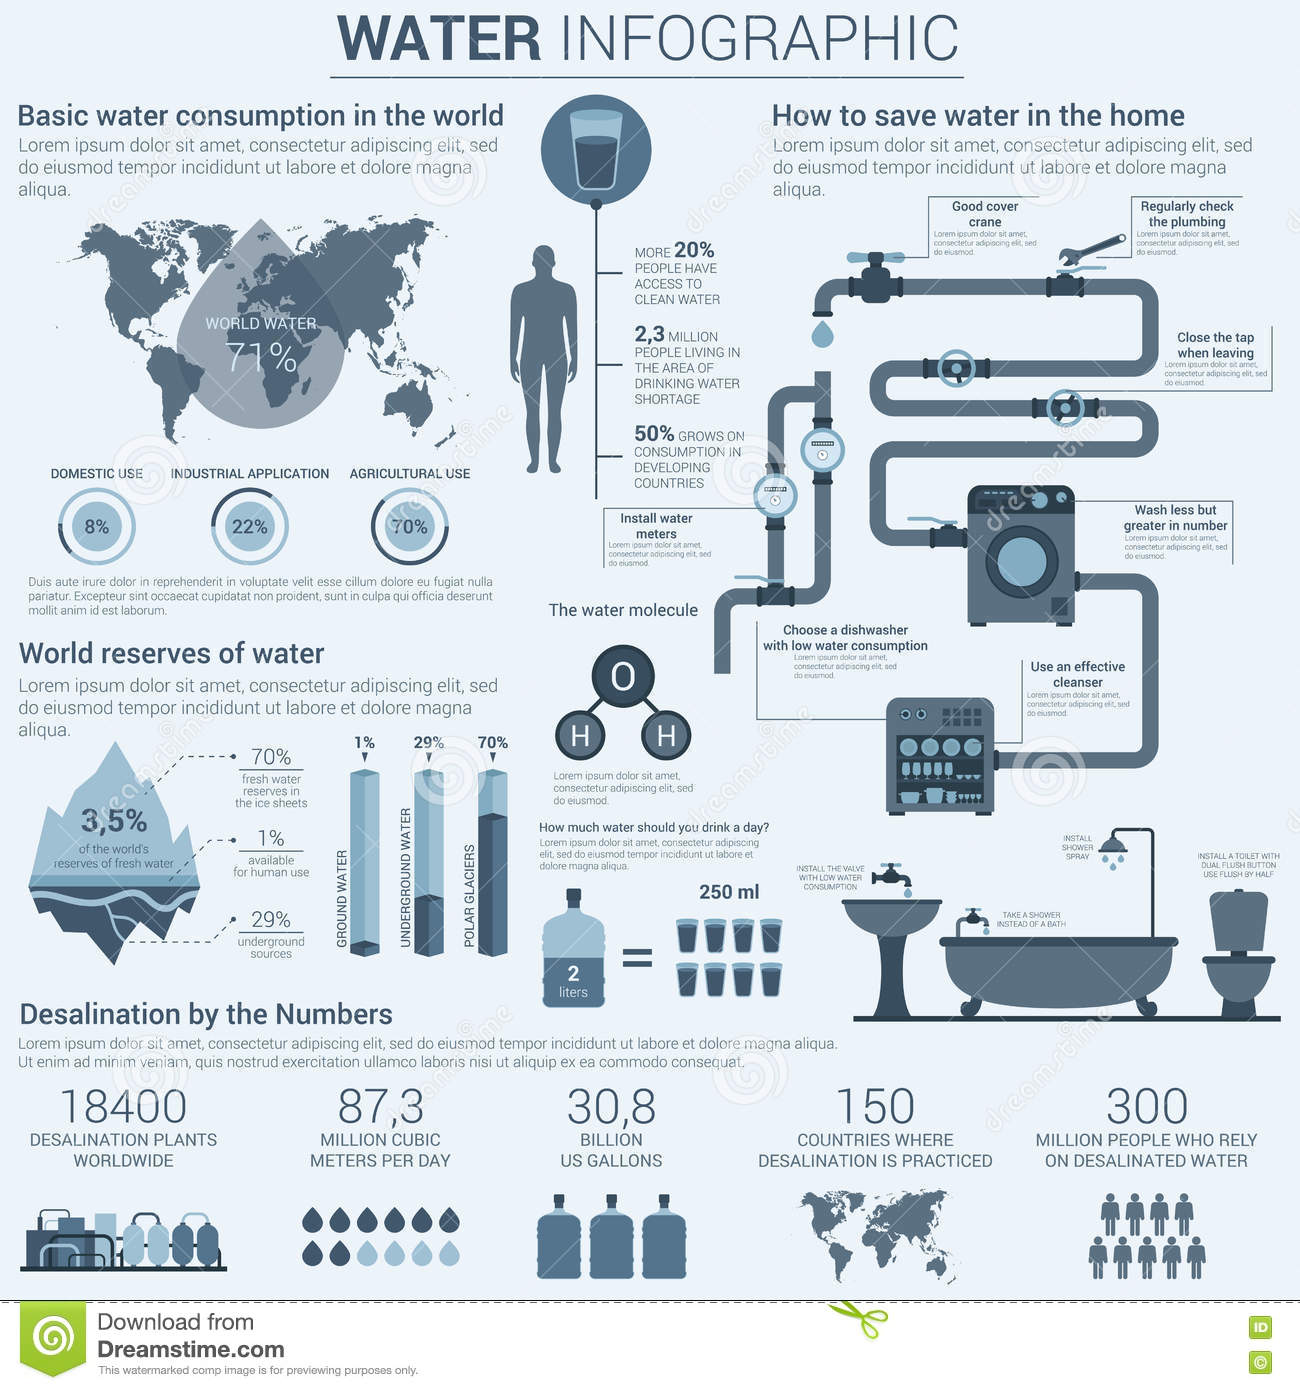 Water infographic animation